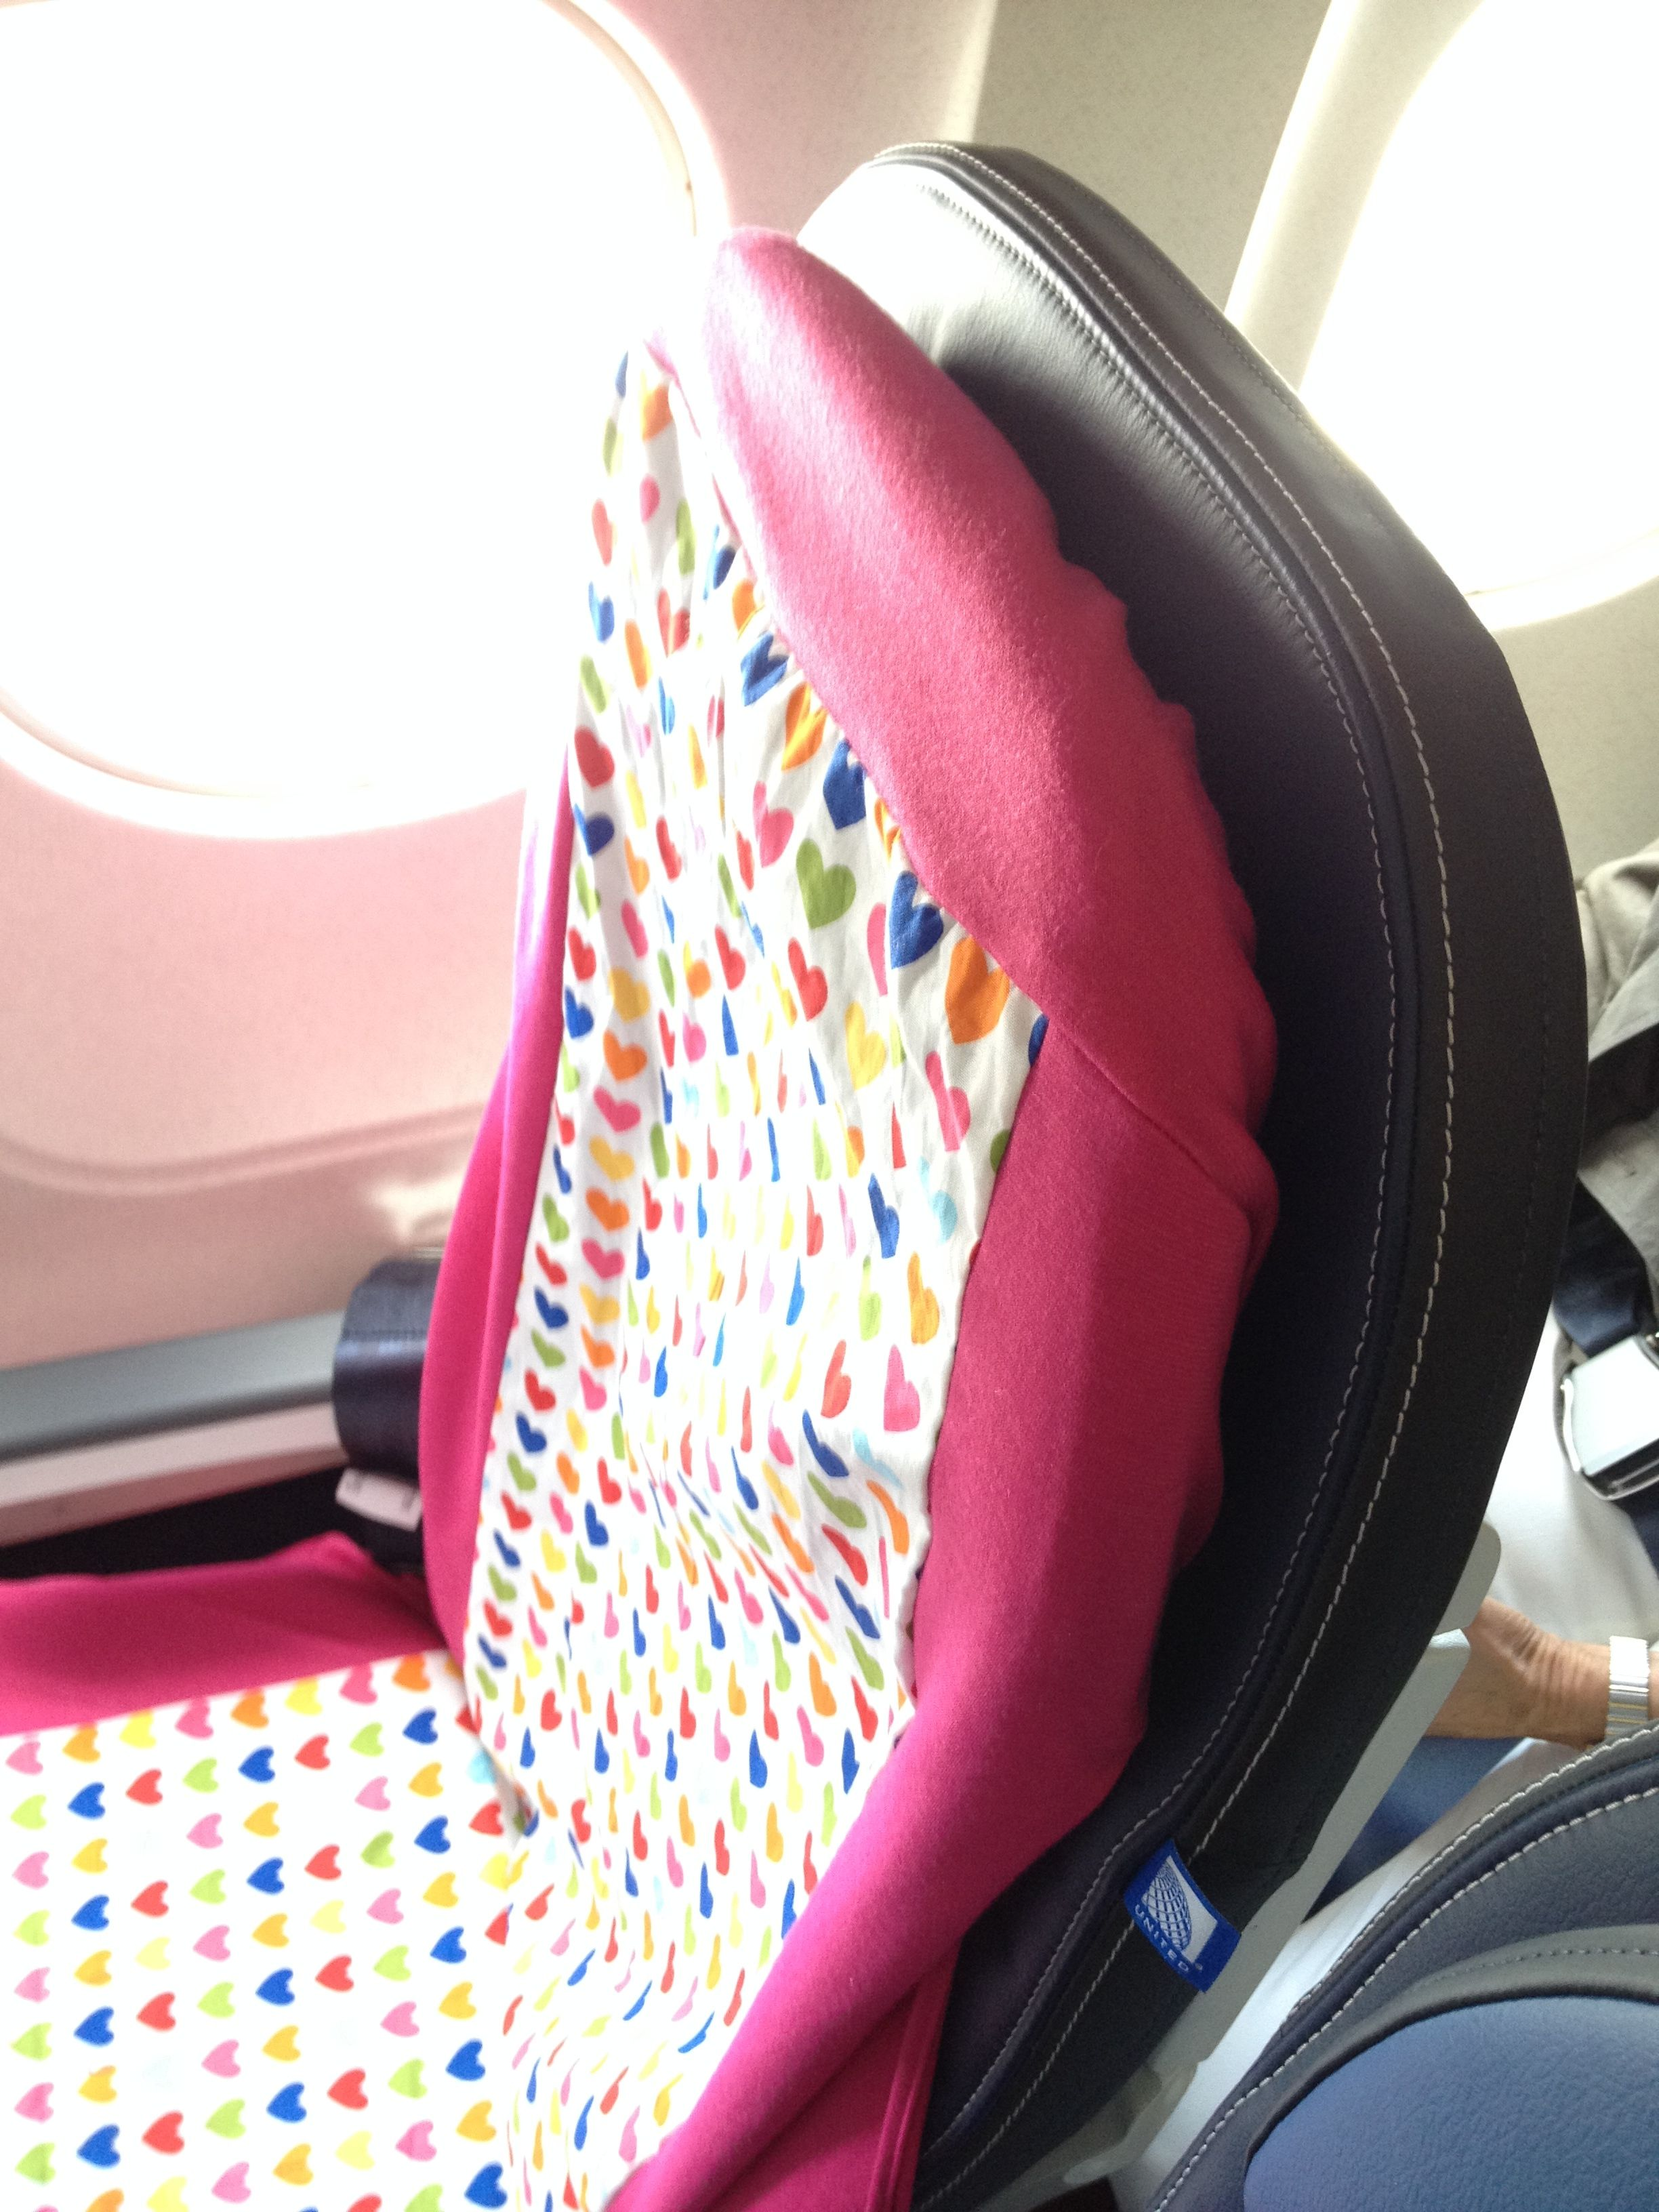 Seat Covers For Use On Public Seats Great Airplanes Commuter Trains Busses And Even Movie Theaters